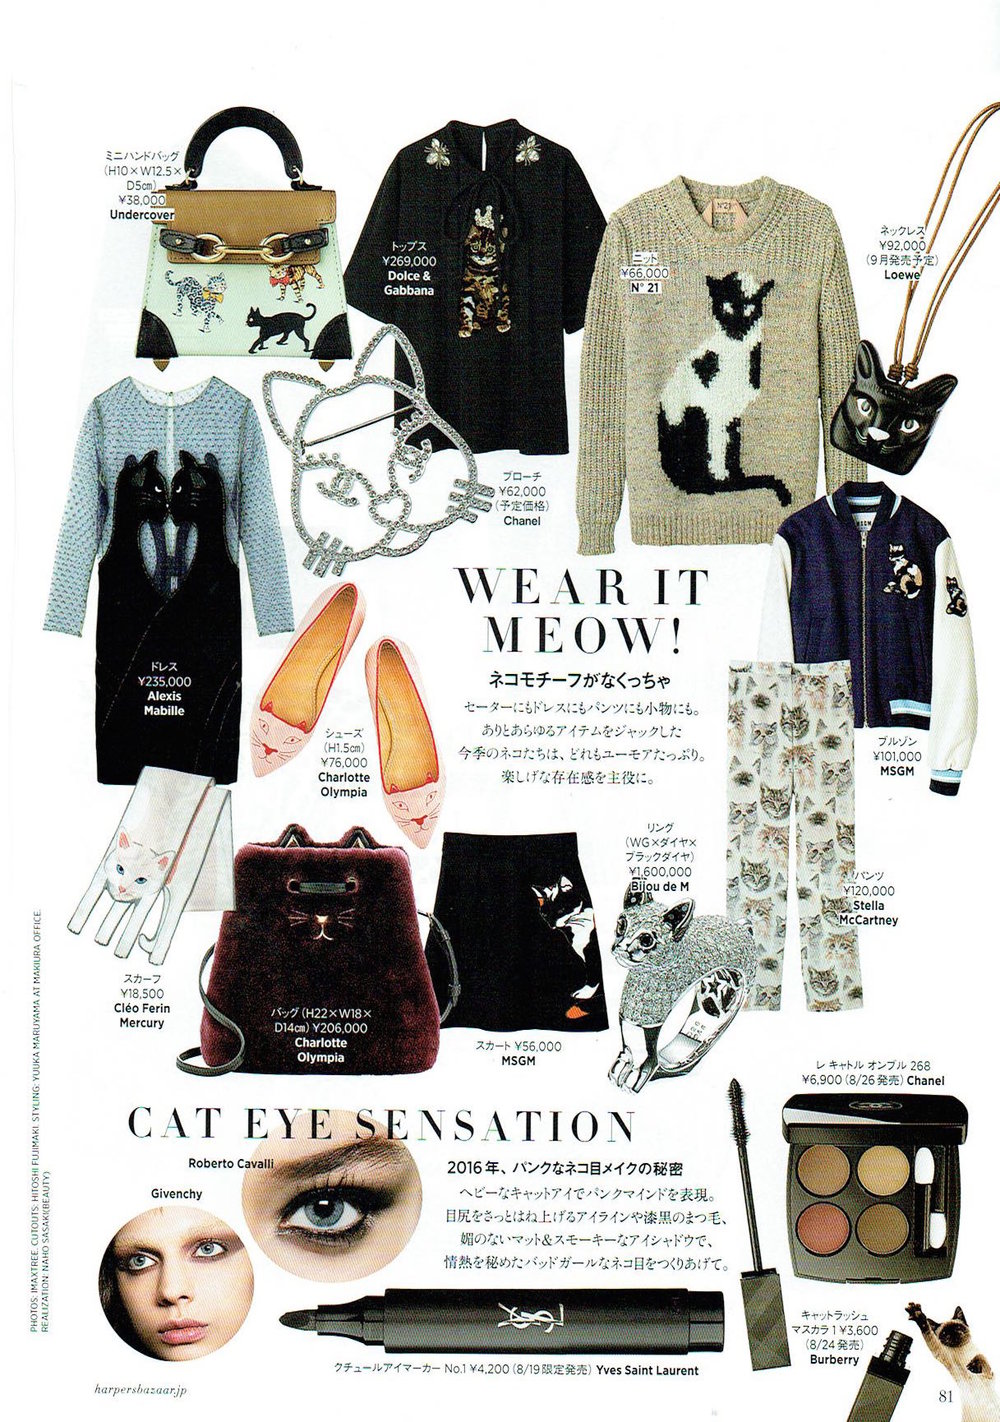 Small White Cat Silk Scarf as seen in Harper's Bazaar Magazine